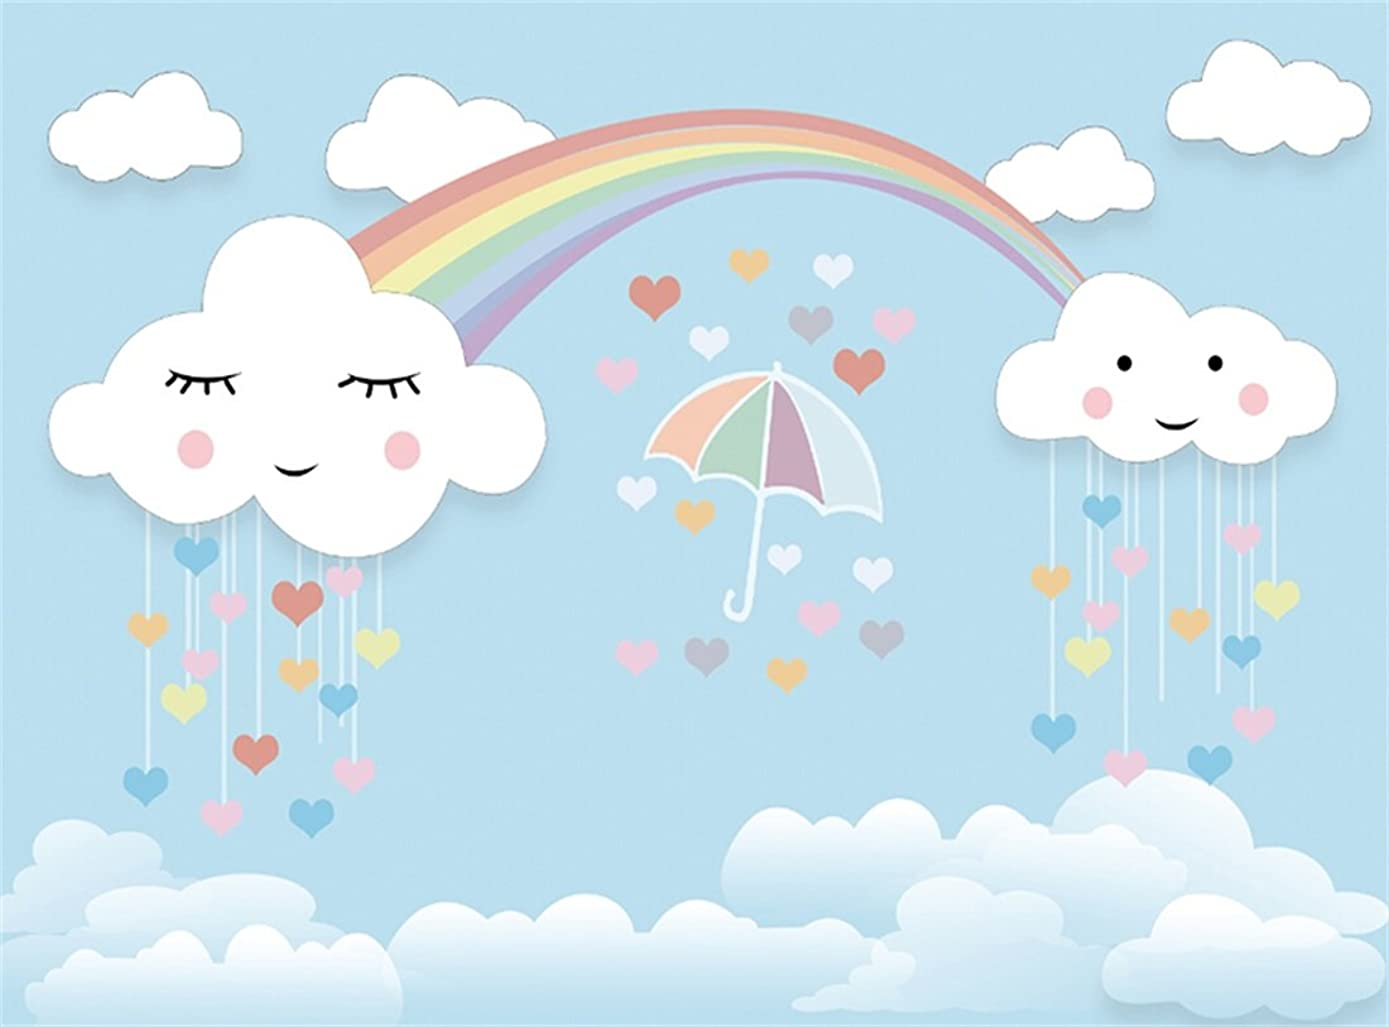 Leowefowa 9X6FT Sweet Baby Shower Backdrop Umbrella Falling Hearts Rainbow Baby Blue White Cloud Cartoon Backdrops for Photography Boys Girls Birthday Party Vinyl Photo Background Studio Props